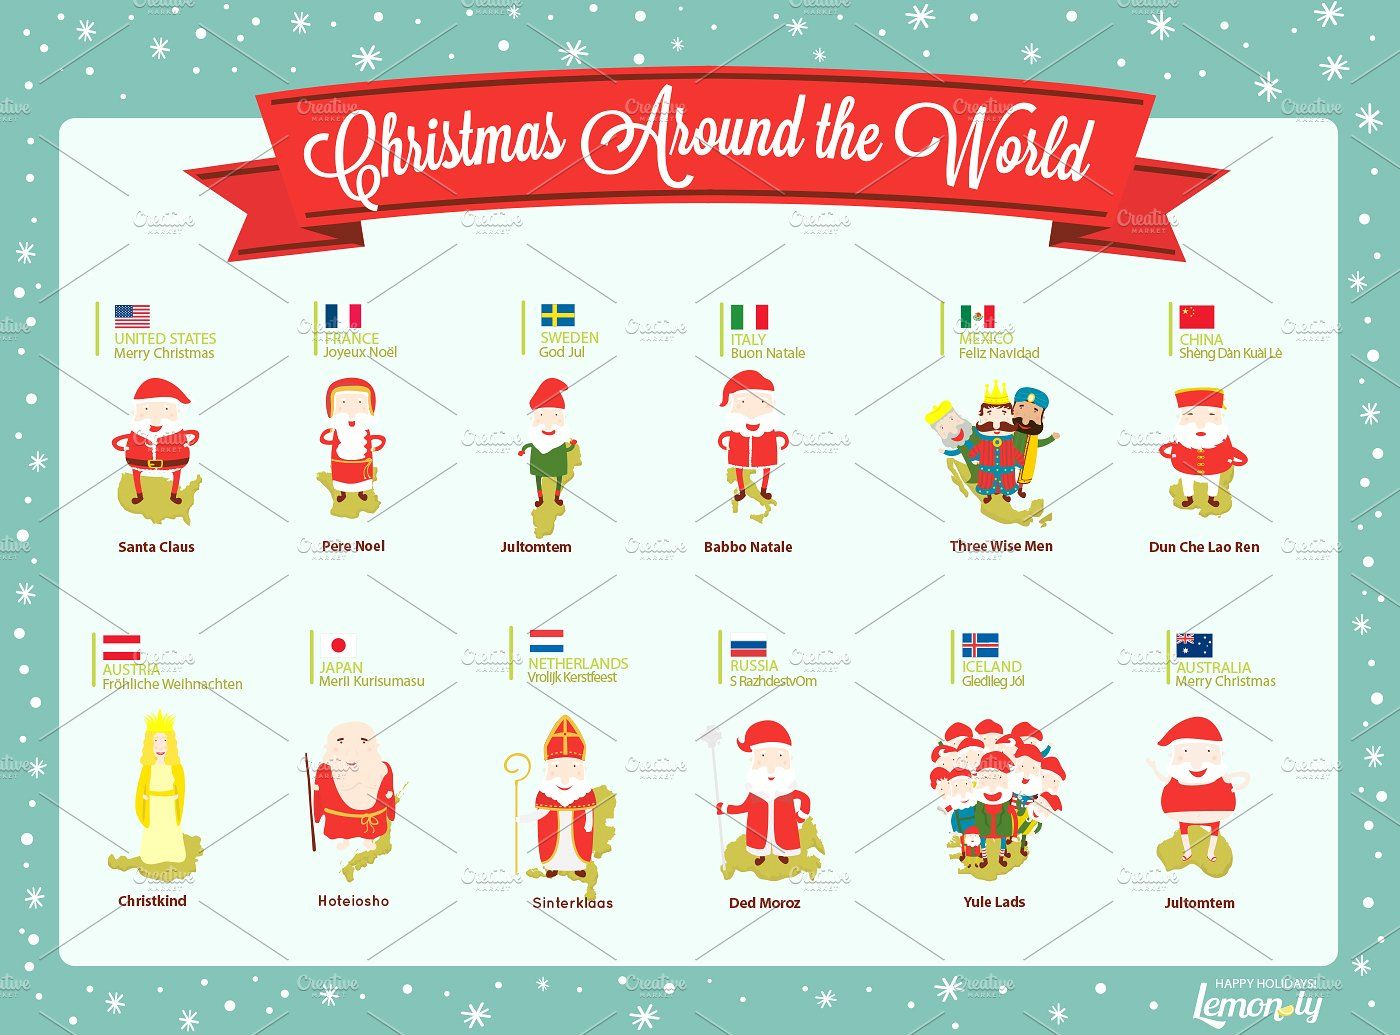 Christmas Around the World by Lemonly on creativemarket